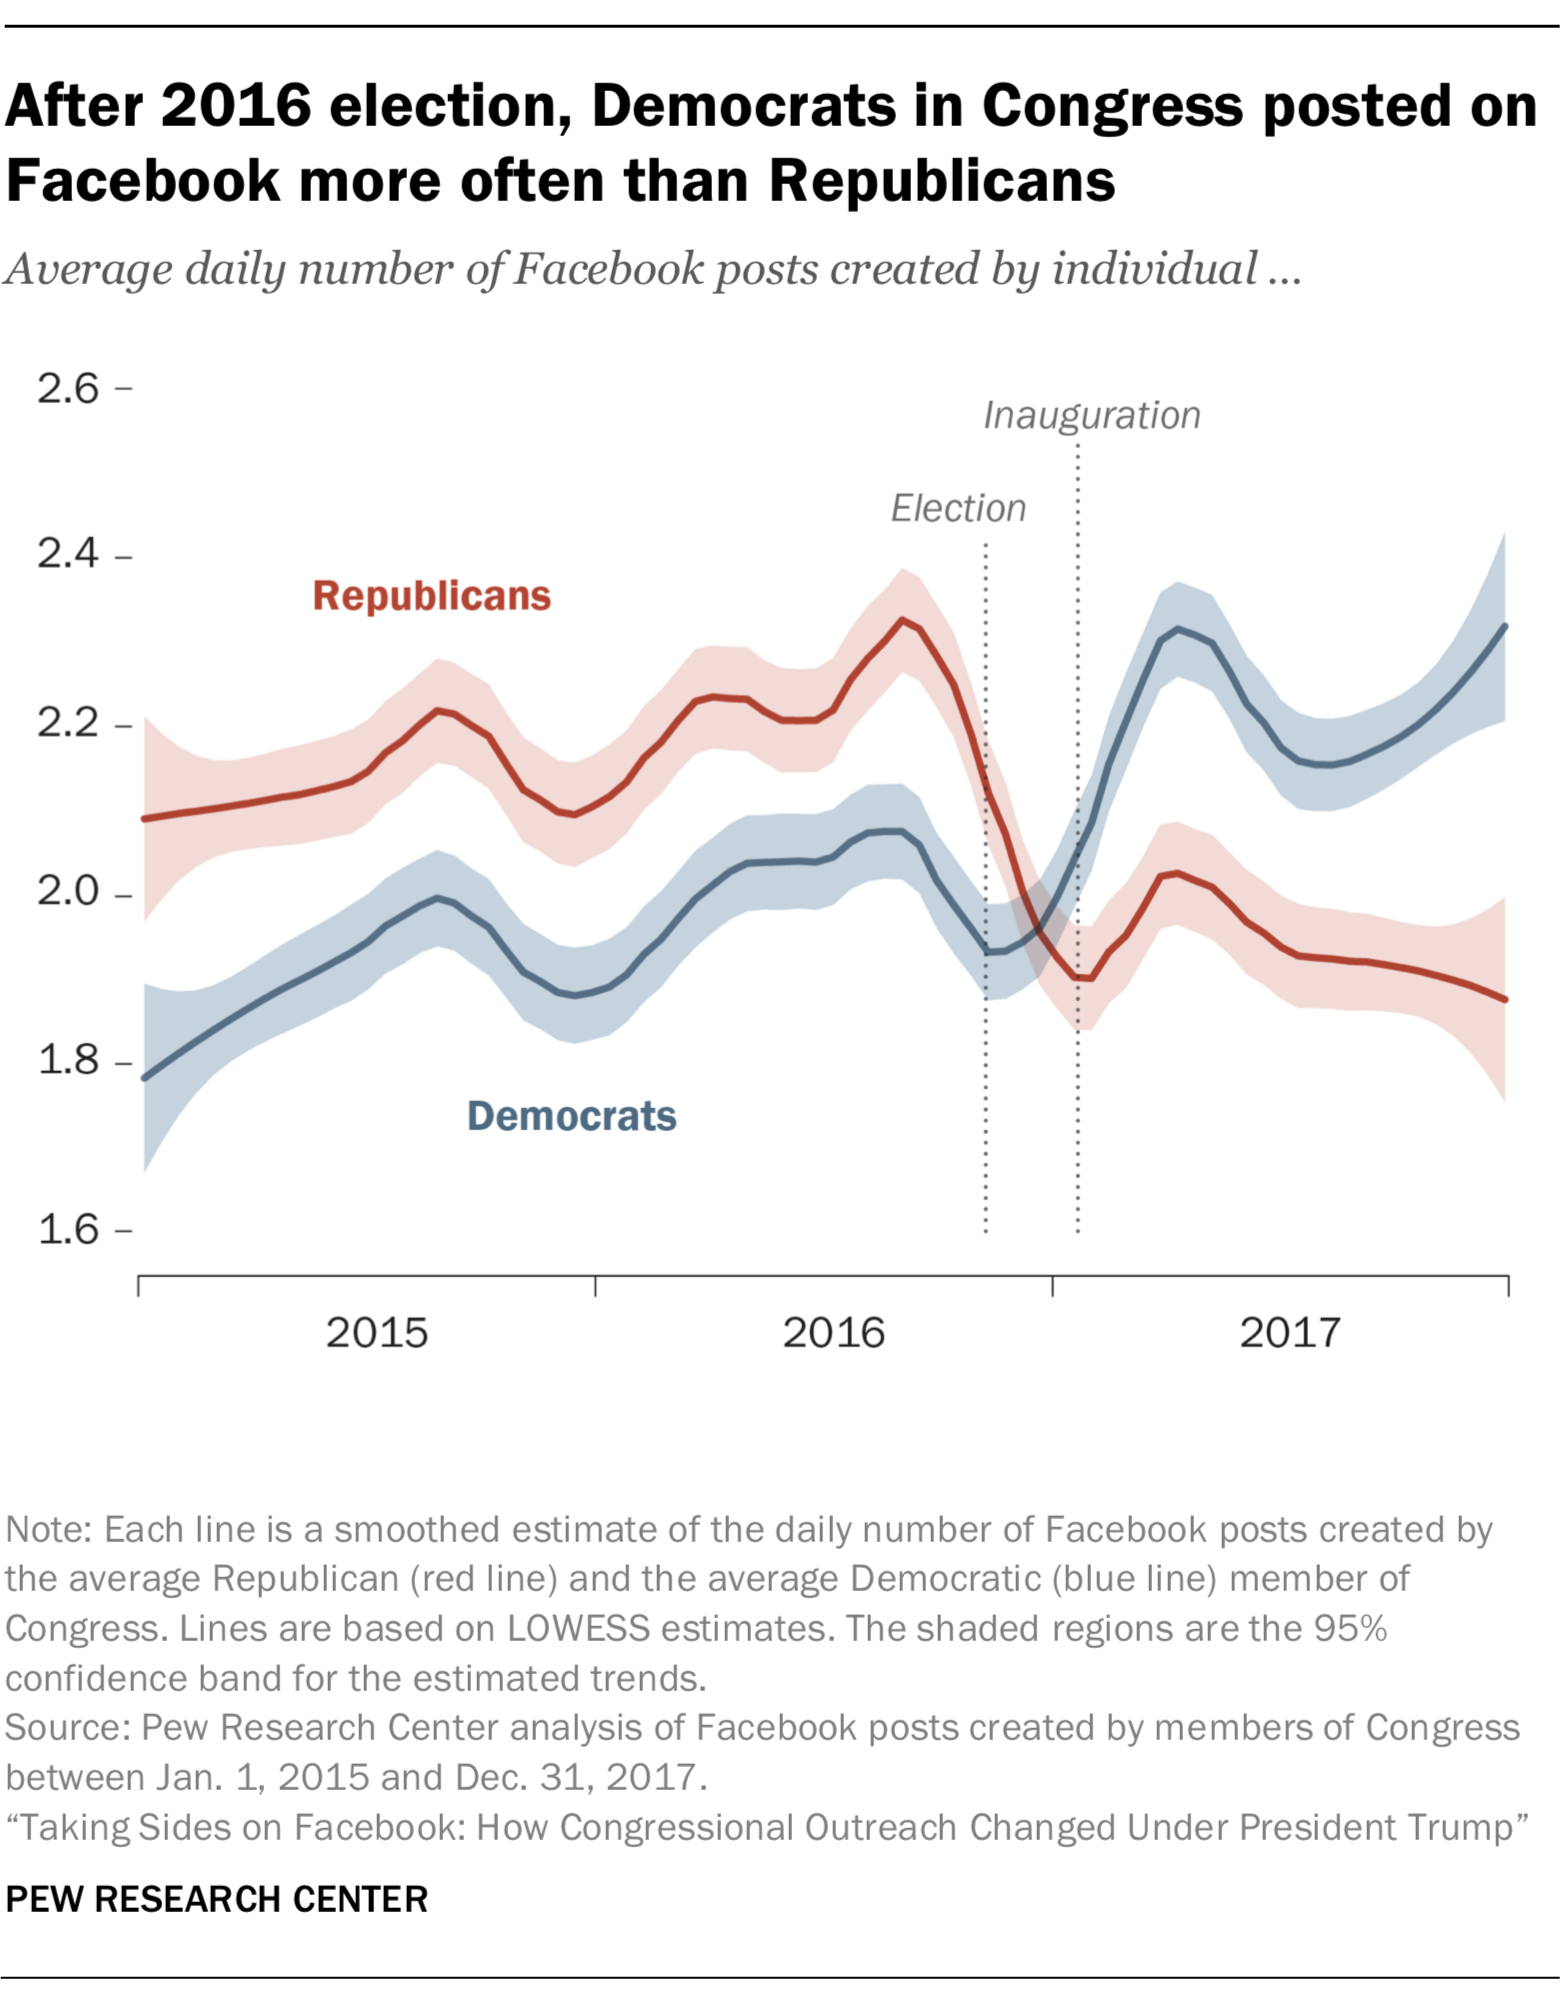 After 2016 election, Democrats in Congress posted on Facebook more often than Republicans